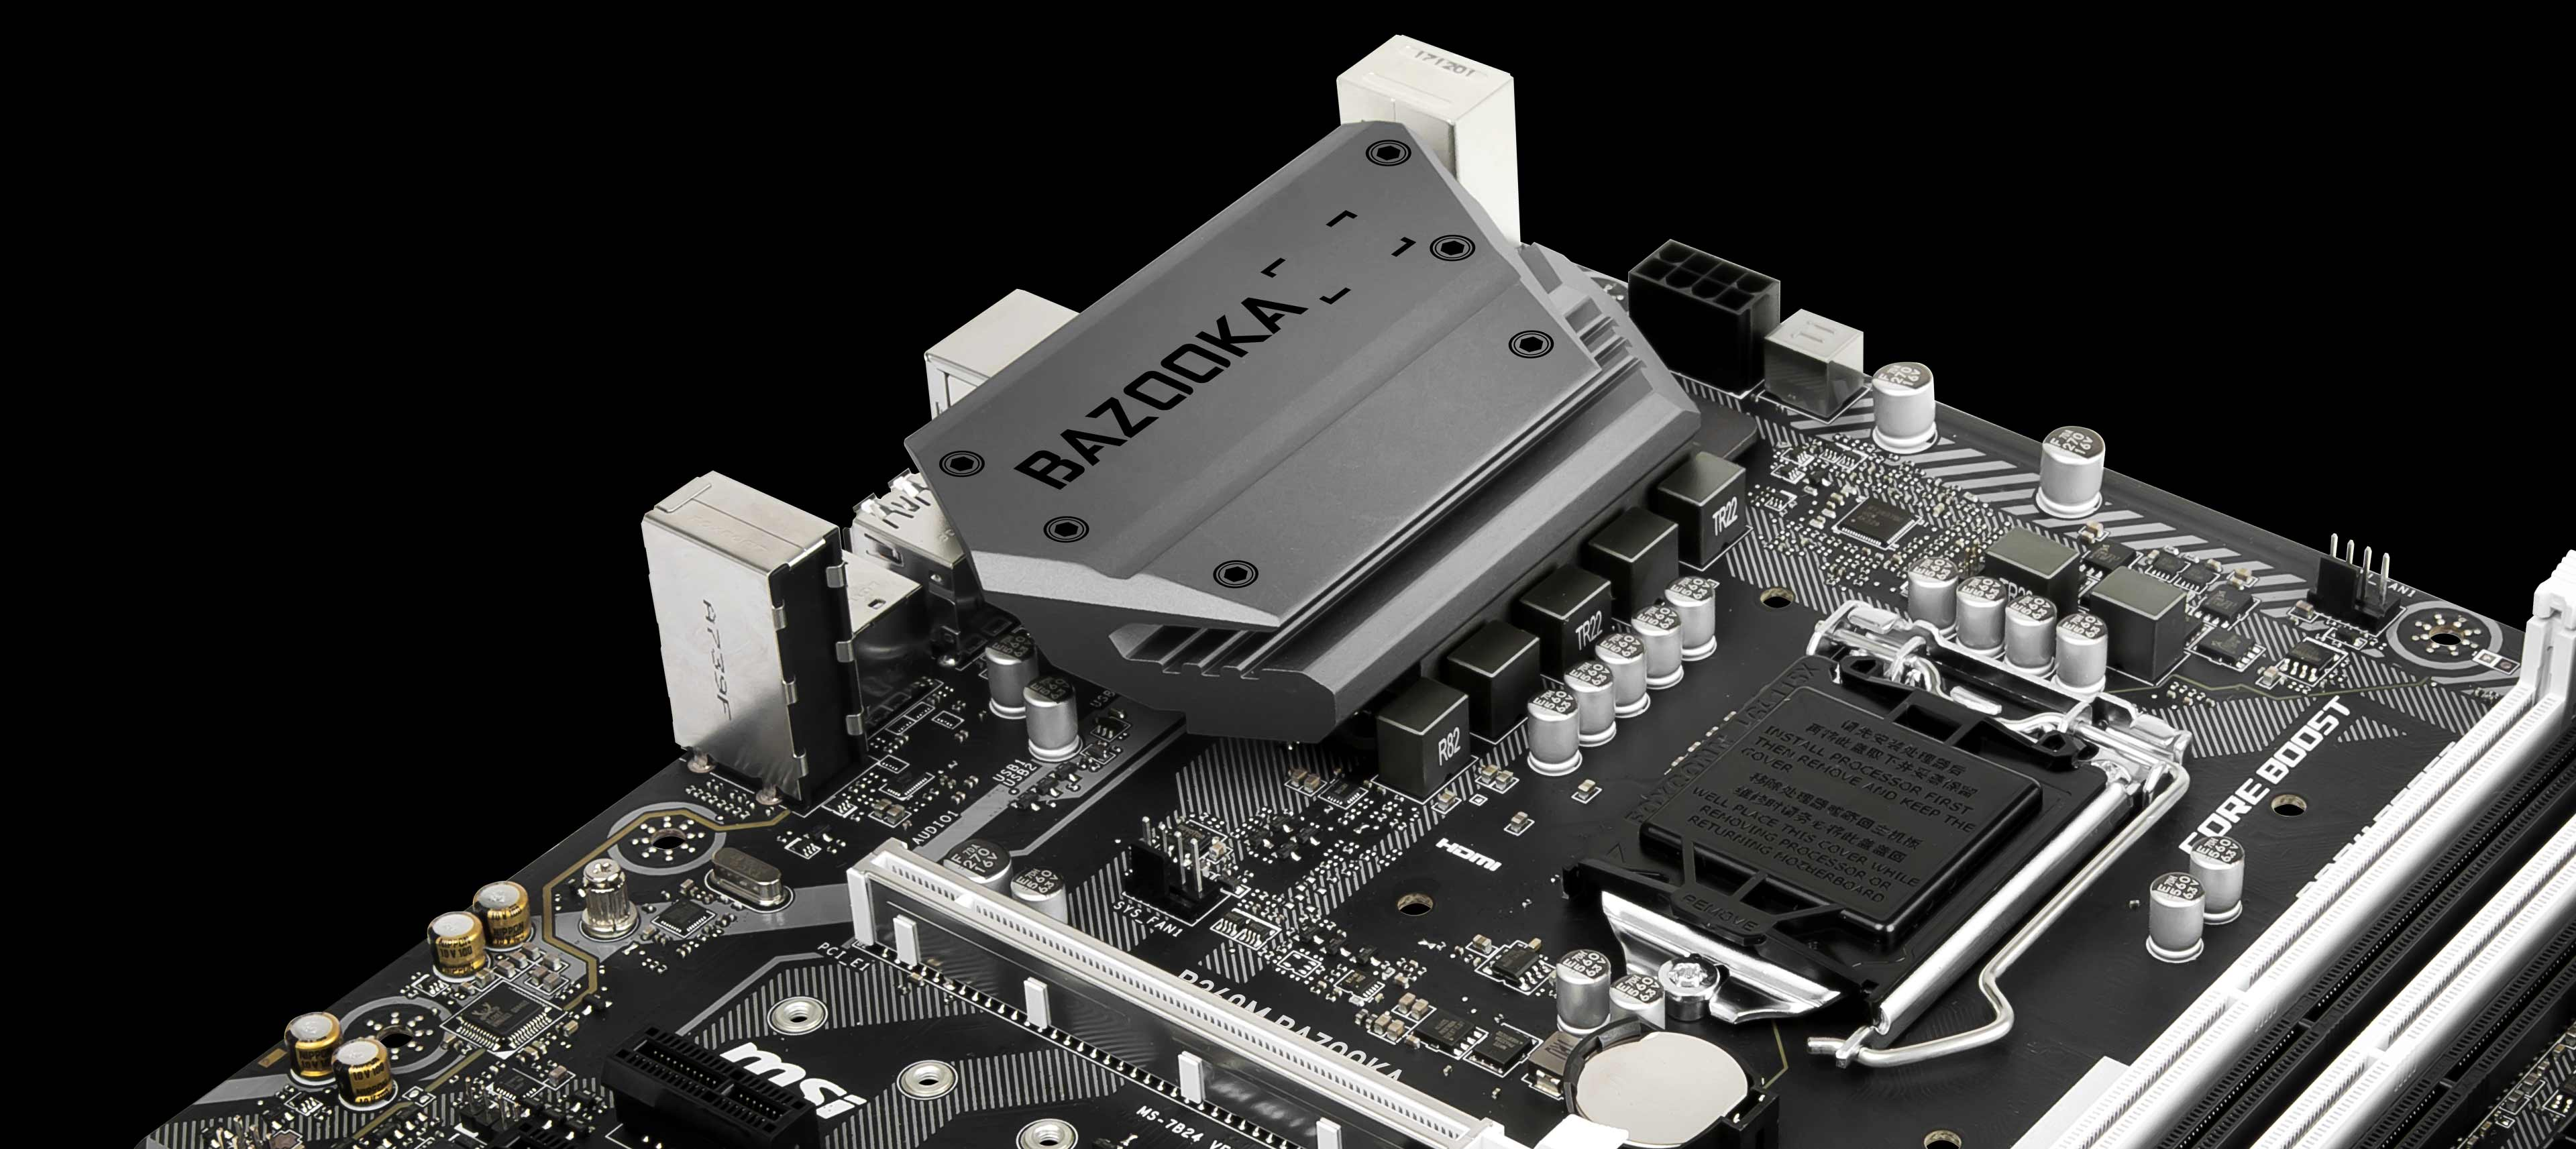 B360m Bazooka Motherboard The World Leader In Design Custom Cpu Gpu Processing Unit Enhanced Circuit Board Cooling Your Pc Is Essential For Reliable Performance Weve Made Sure To Include Enough Fan Headers With Full Control Allow You Cool System Any